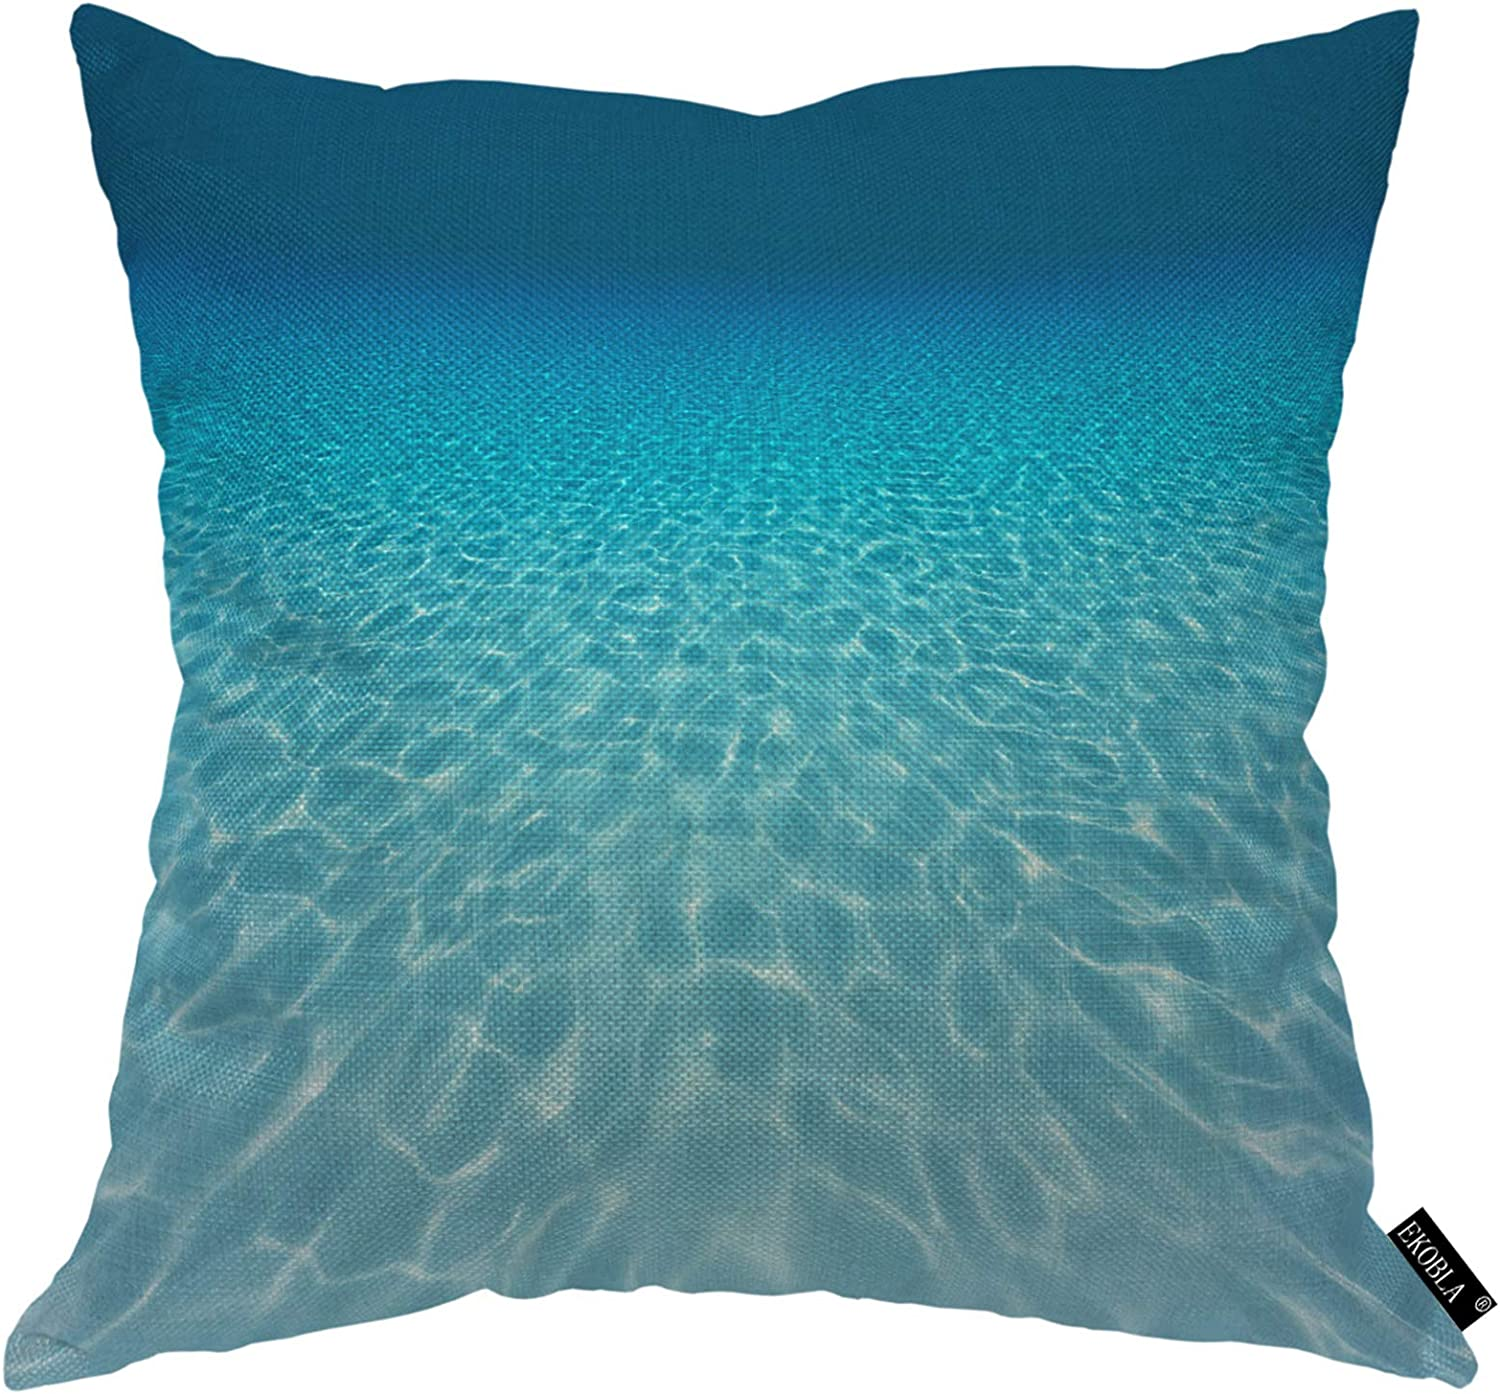 EKOBLA Underwater Scene Throw Pillow Cover Tranquil Marine Beams Summer Clean Swimming Pool Cozy Square Cushion Case for Men Women Boys Girls Room Home Decor Cotton Linen 18x18 Inch